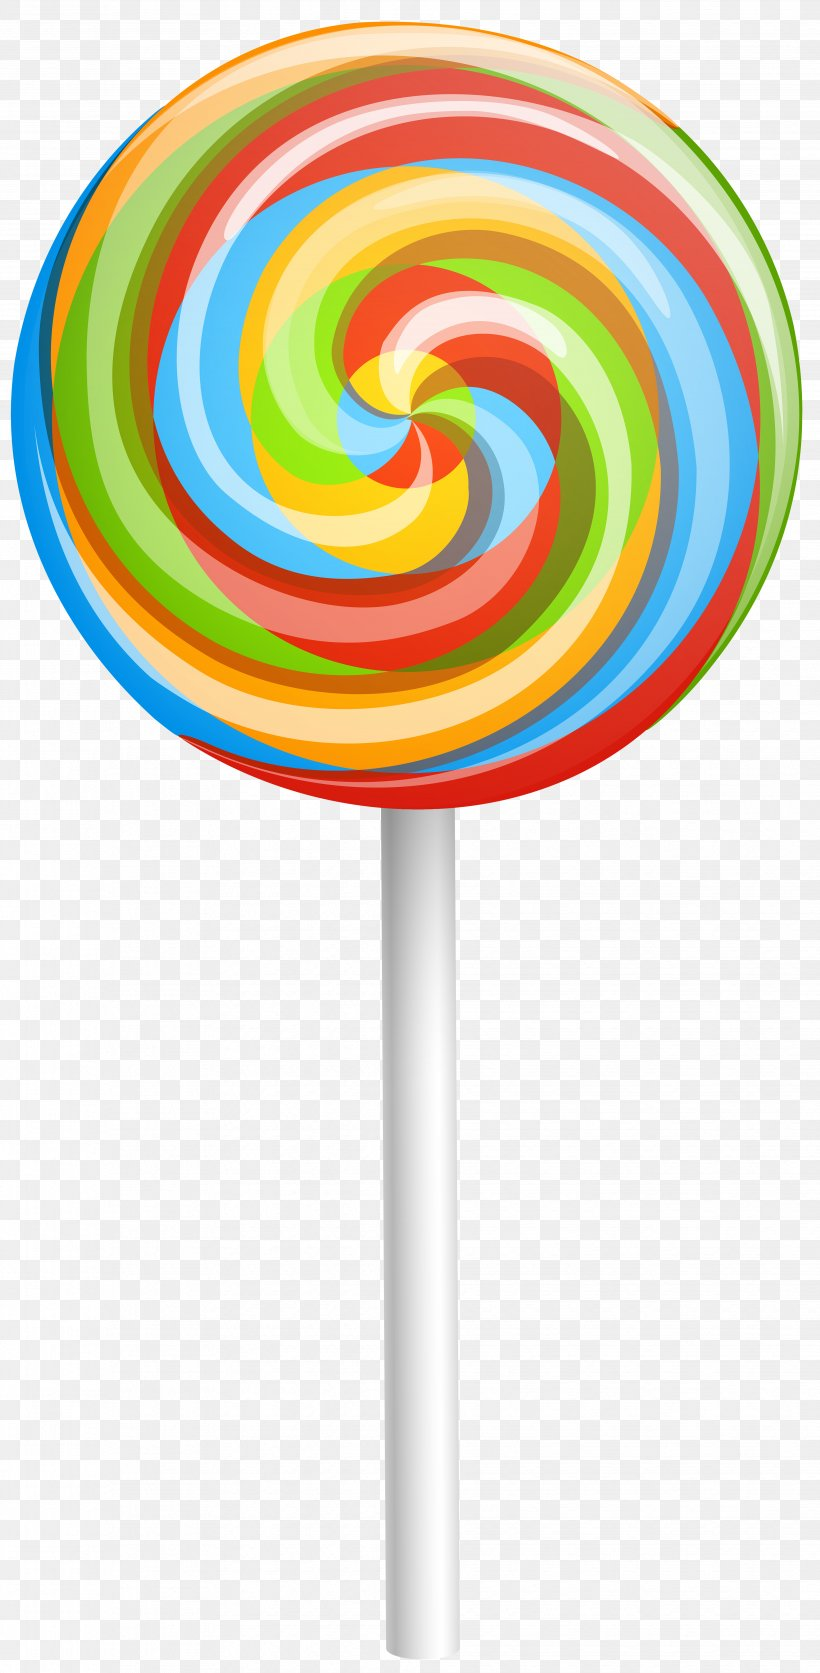 Lollipop Candy Clip Art, PNG, 3919x8000px, Lollipop, Candy.